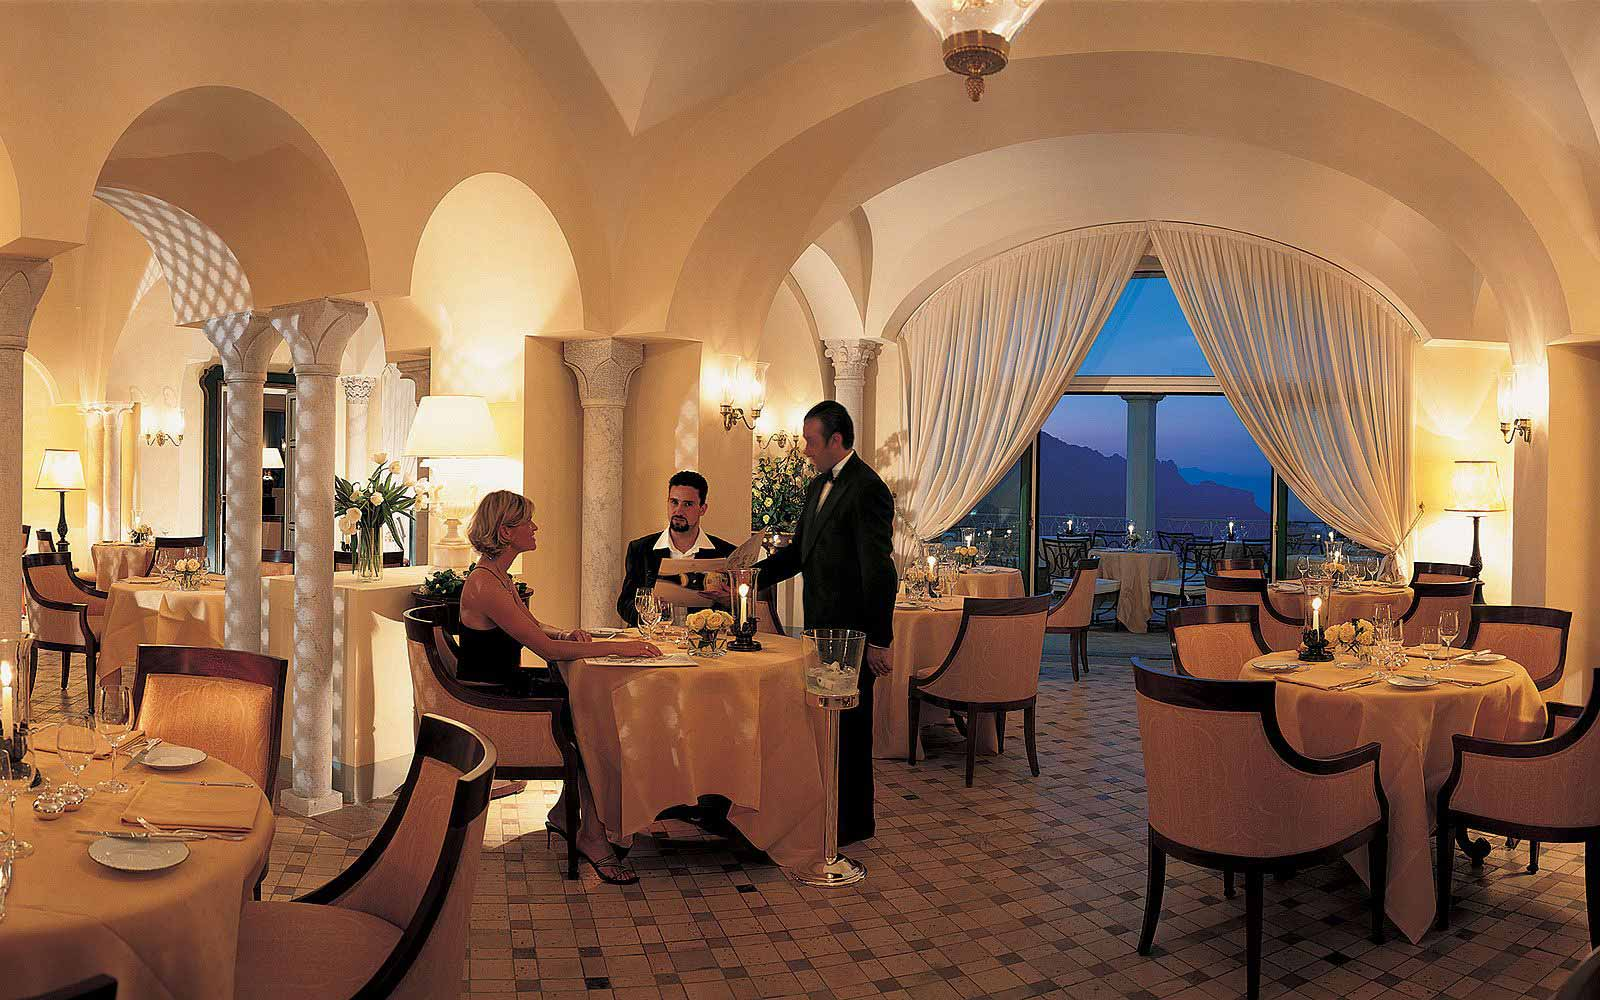 Restaurant at the Belmond Hotel Caruso